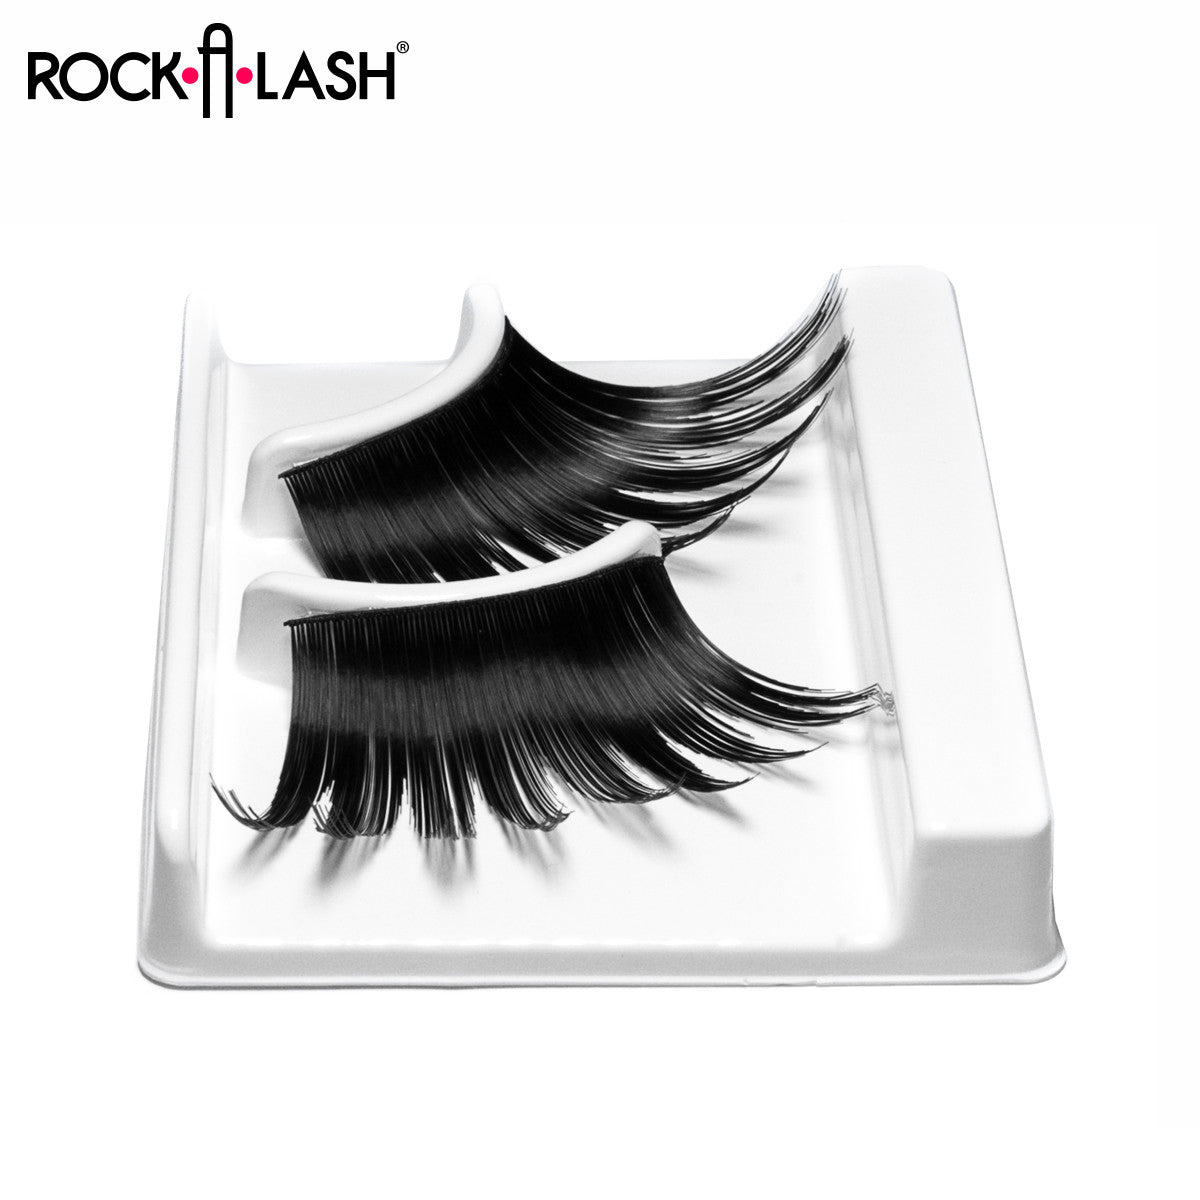 Rock-A-Lash ® <br> #30 - CIRQUE™ - ShowGirl